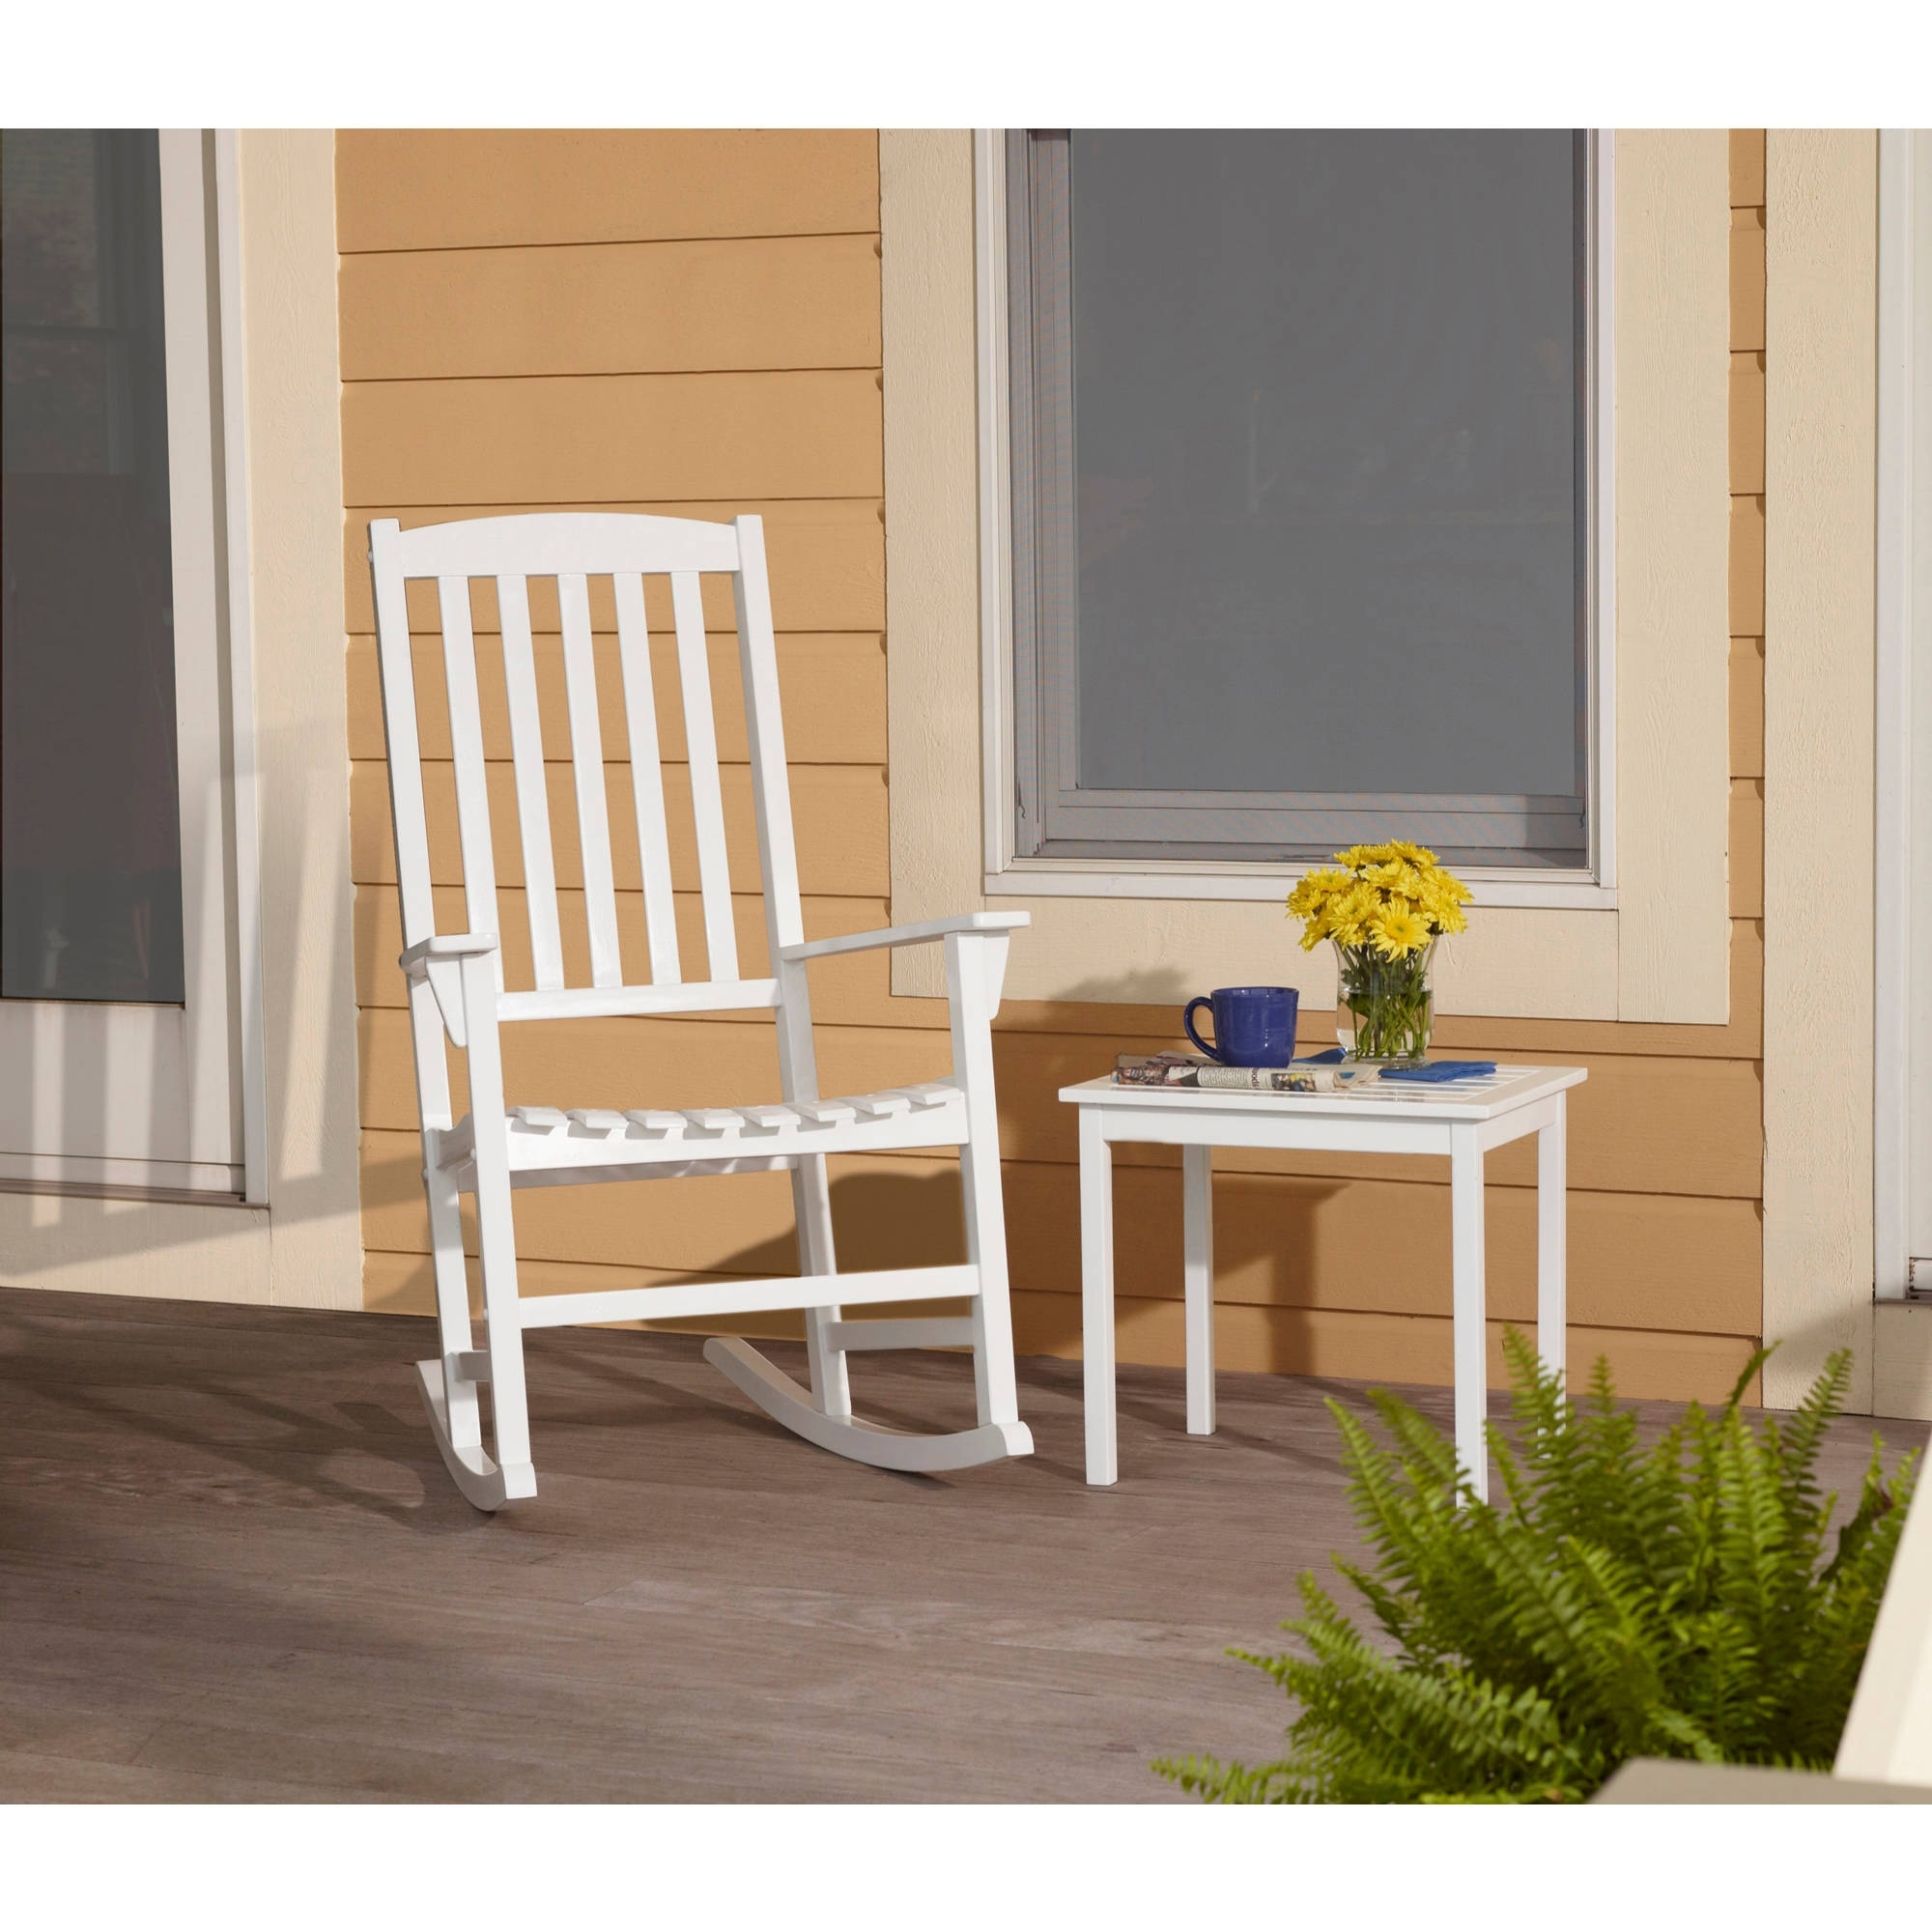 Widely Used Walmart Rocking Chairs Throughout Mainstays Outdoor Rocking Chair, White – Walmart (View 15 of 15)